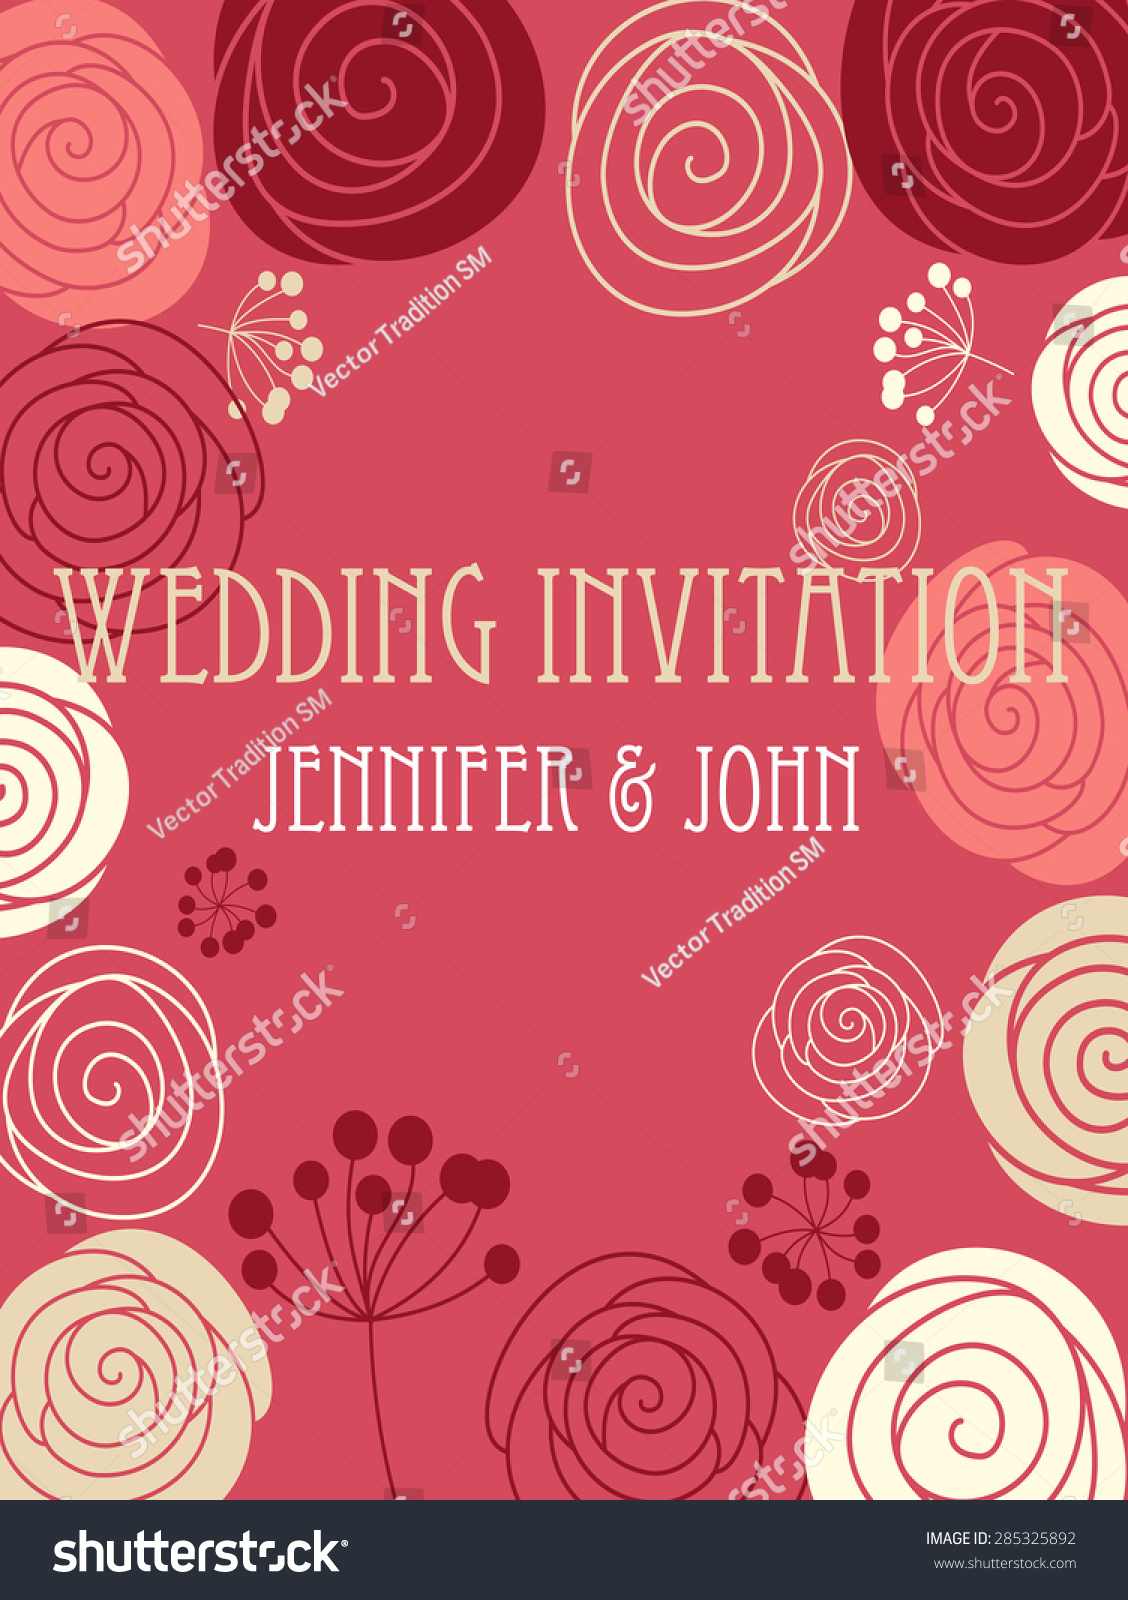 Wedding Invitation Card Template Stylized Floral Stock Vector ...